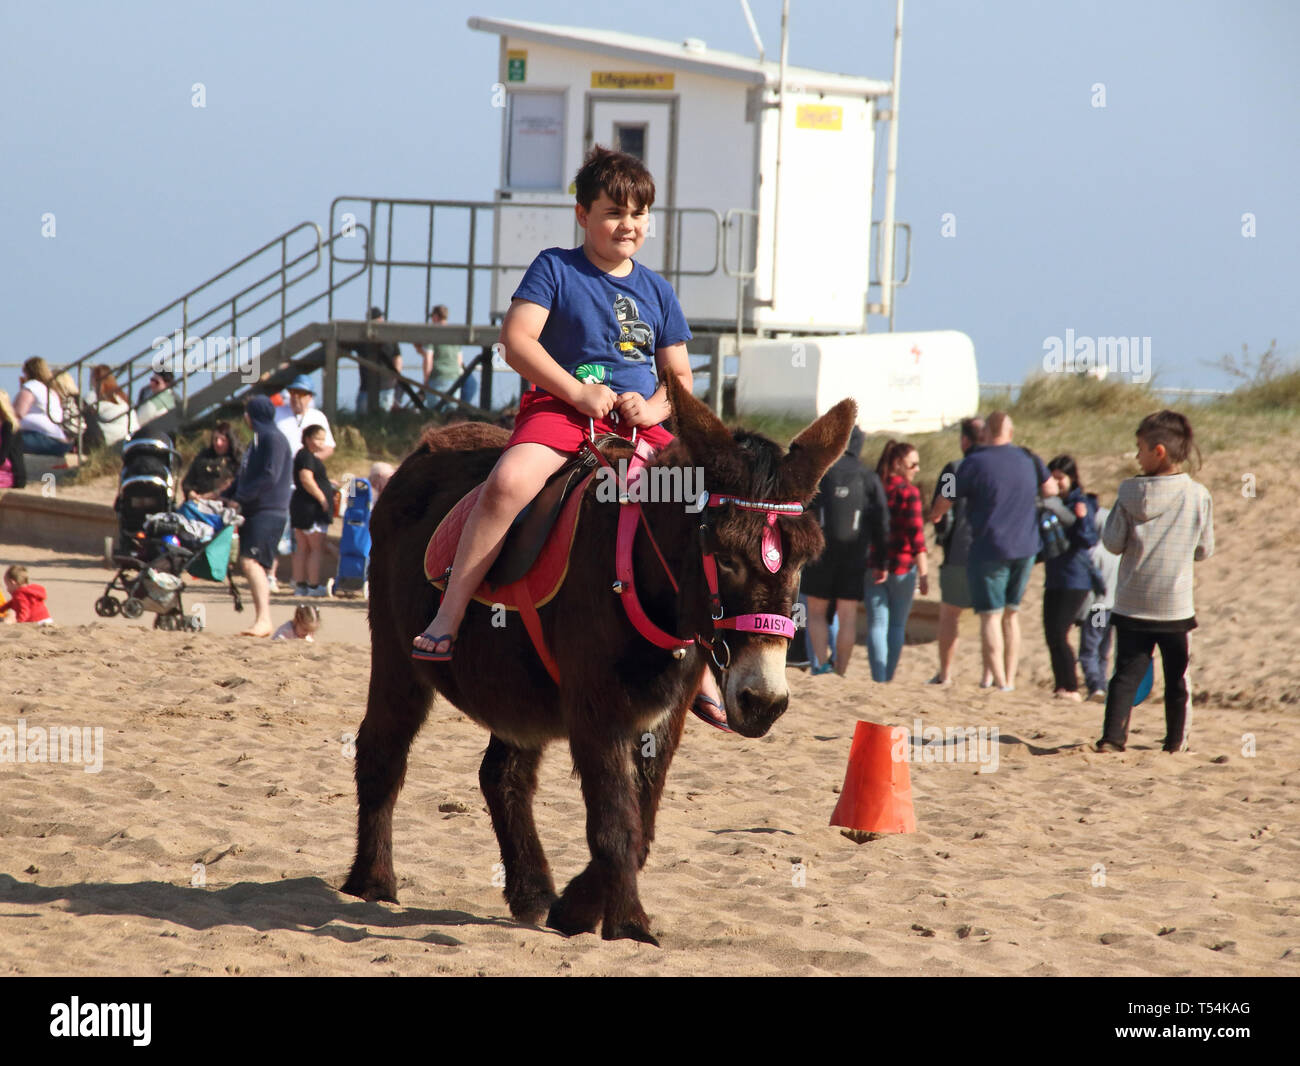 Skegness, UK. 20th Apr, 2019. Child seen riding a donkey on the beach at Skegness during Easter. People enjoy the unseasonably warm Easter weather in the UK - especially the children having donkey rides on the sandy beach at Skegness. The traditional seaside attraction started in Victorian times, but is now seen much less in the major resorts, but is still popular on the Lincolnshire beaches of Skegness, Mablethorpe and Ingoldmells. Credit: SOPA Images Limited/Alamy Live News Stock Photo